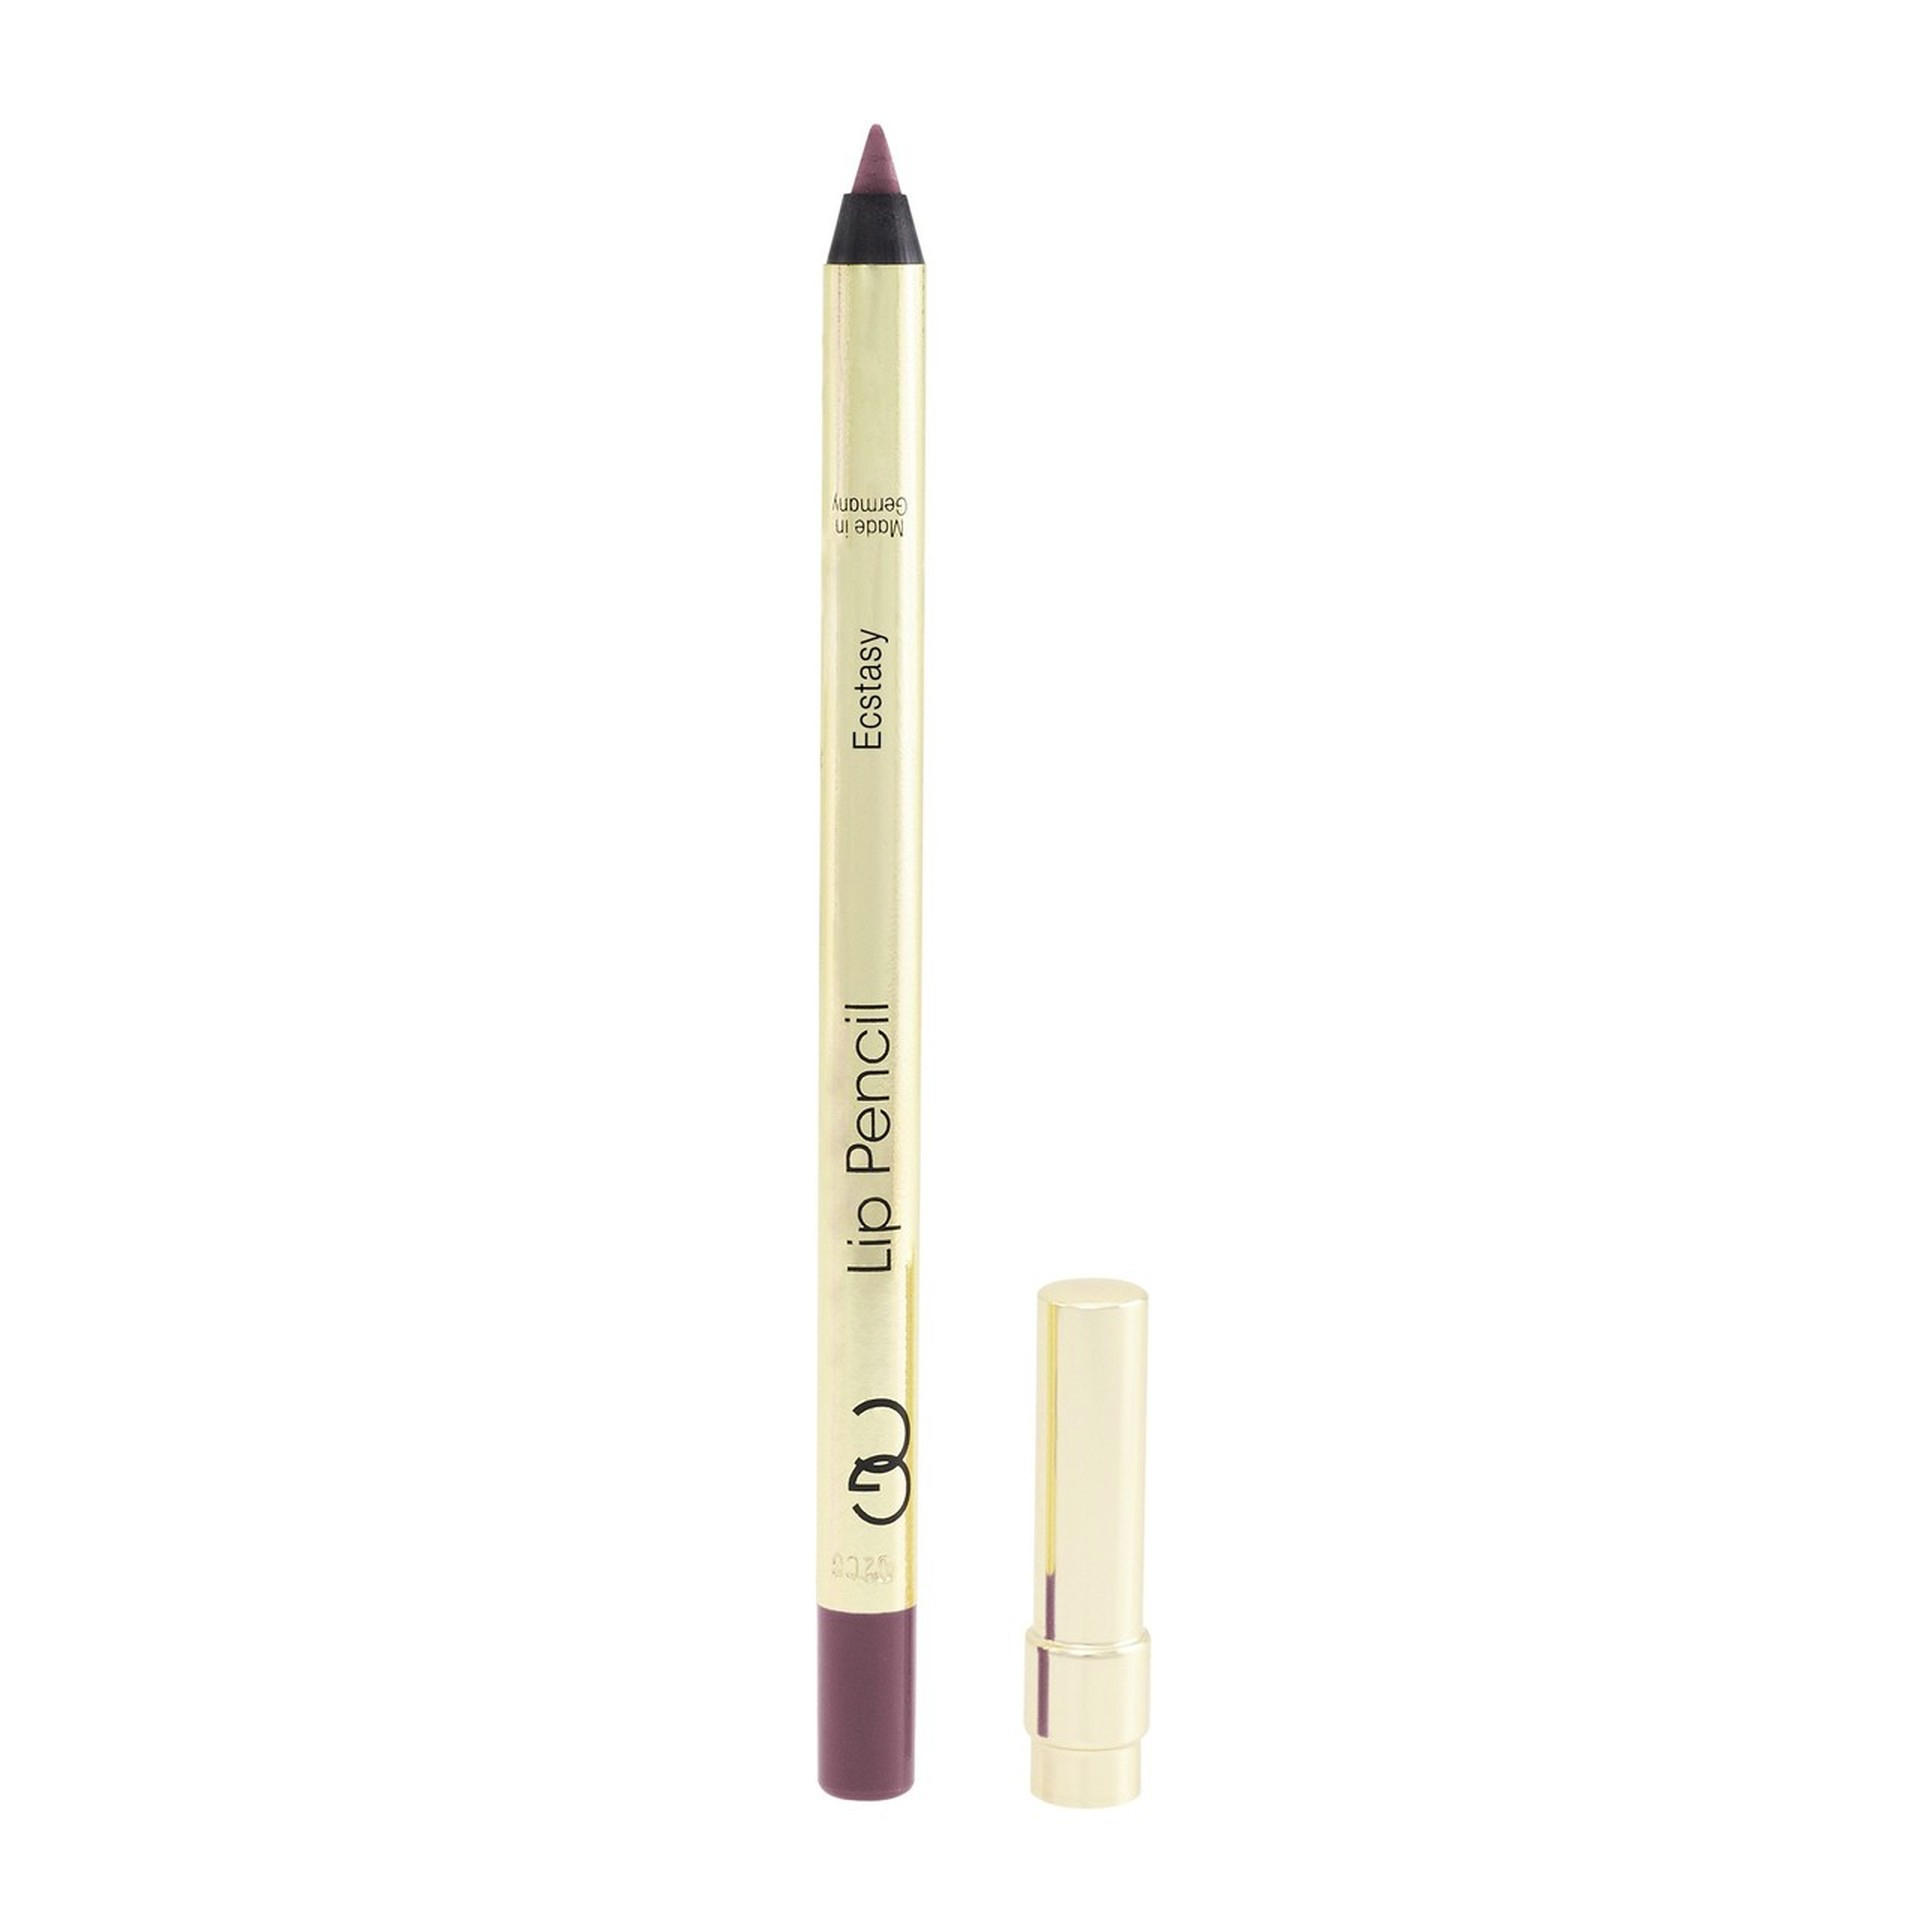 Gerard Cosmetics Lip Pencil Ecstasy